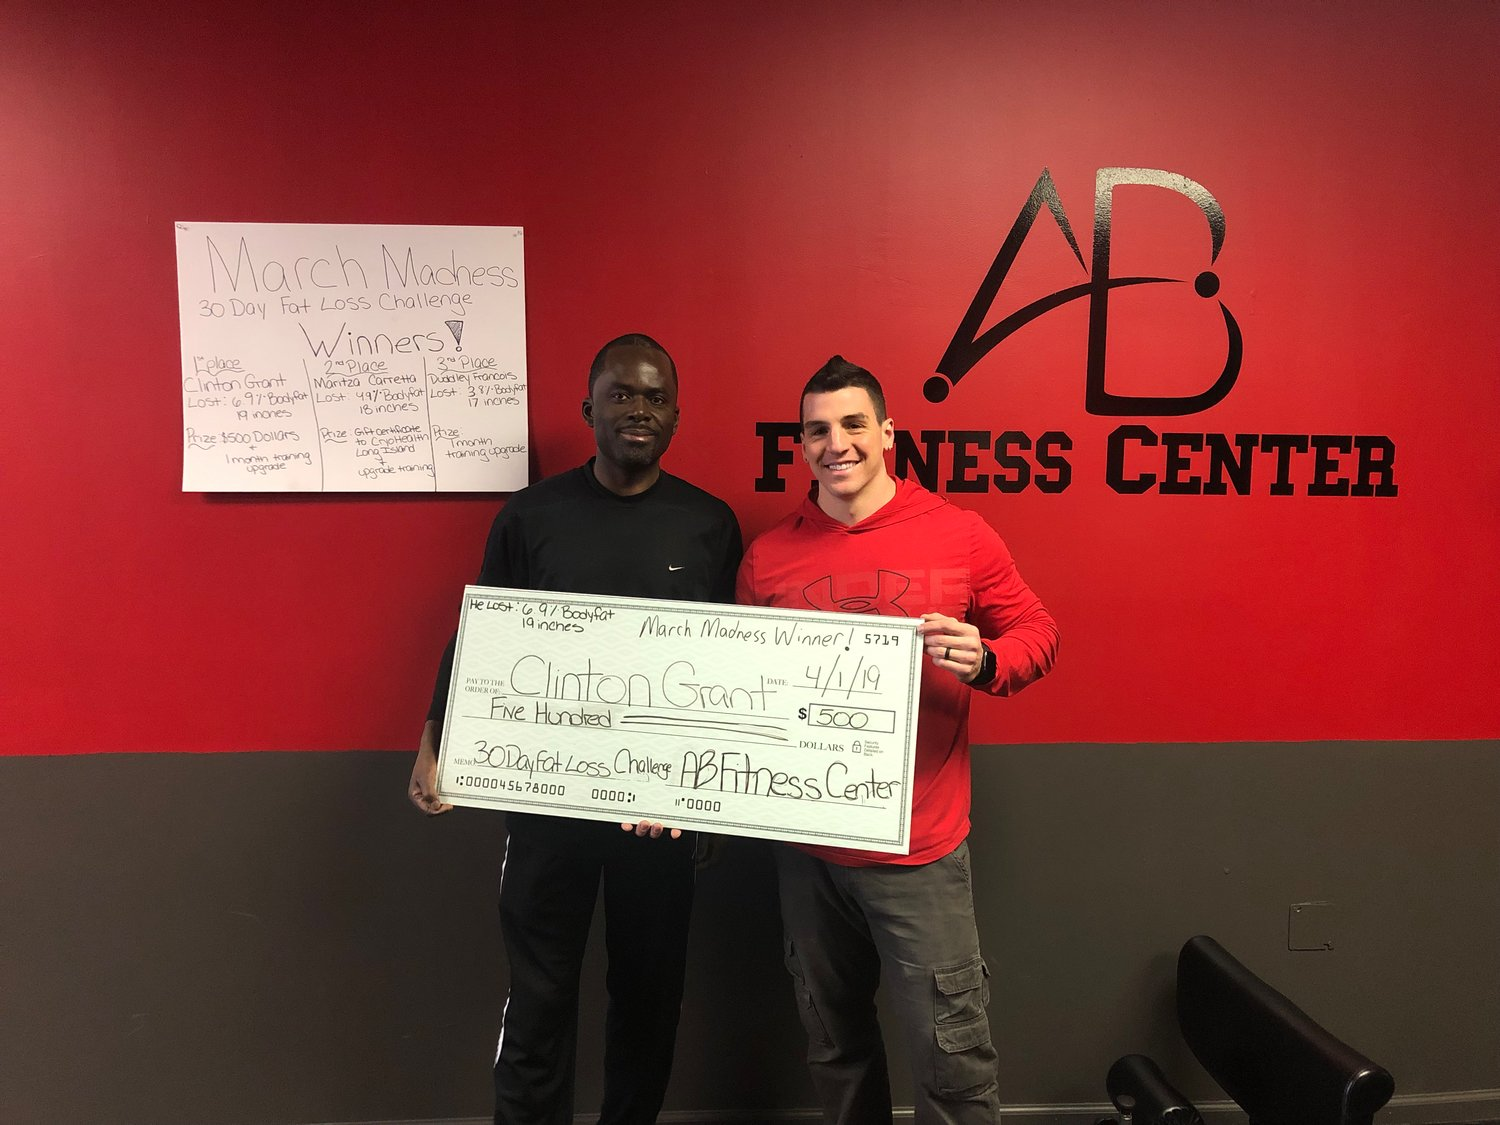 Clinton Grant took home first place in the AB Fitness Center weight loss challenge, shedding 6.9 percent body fat and 19 inches.